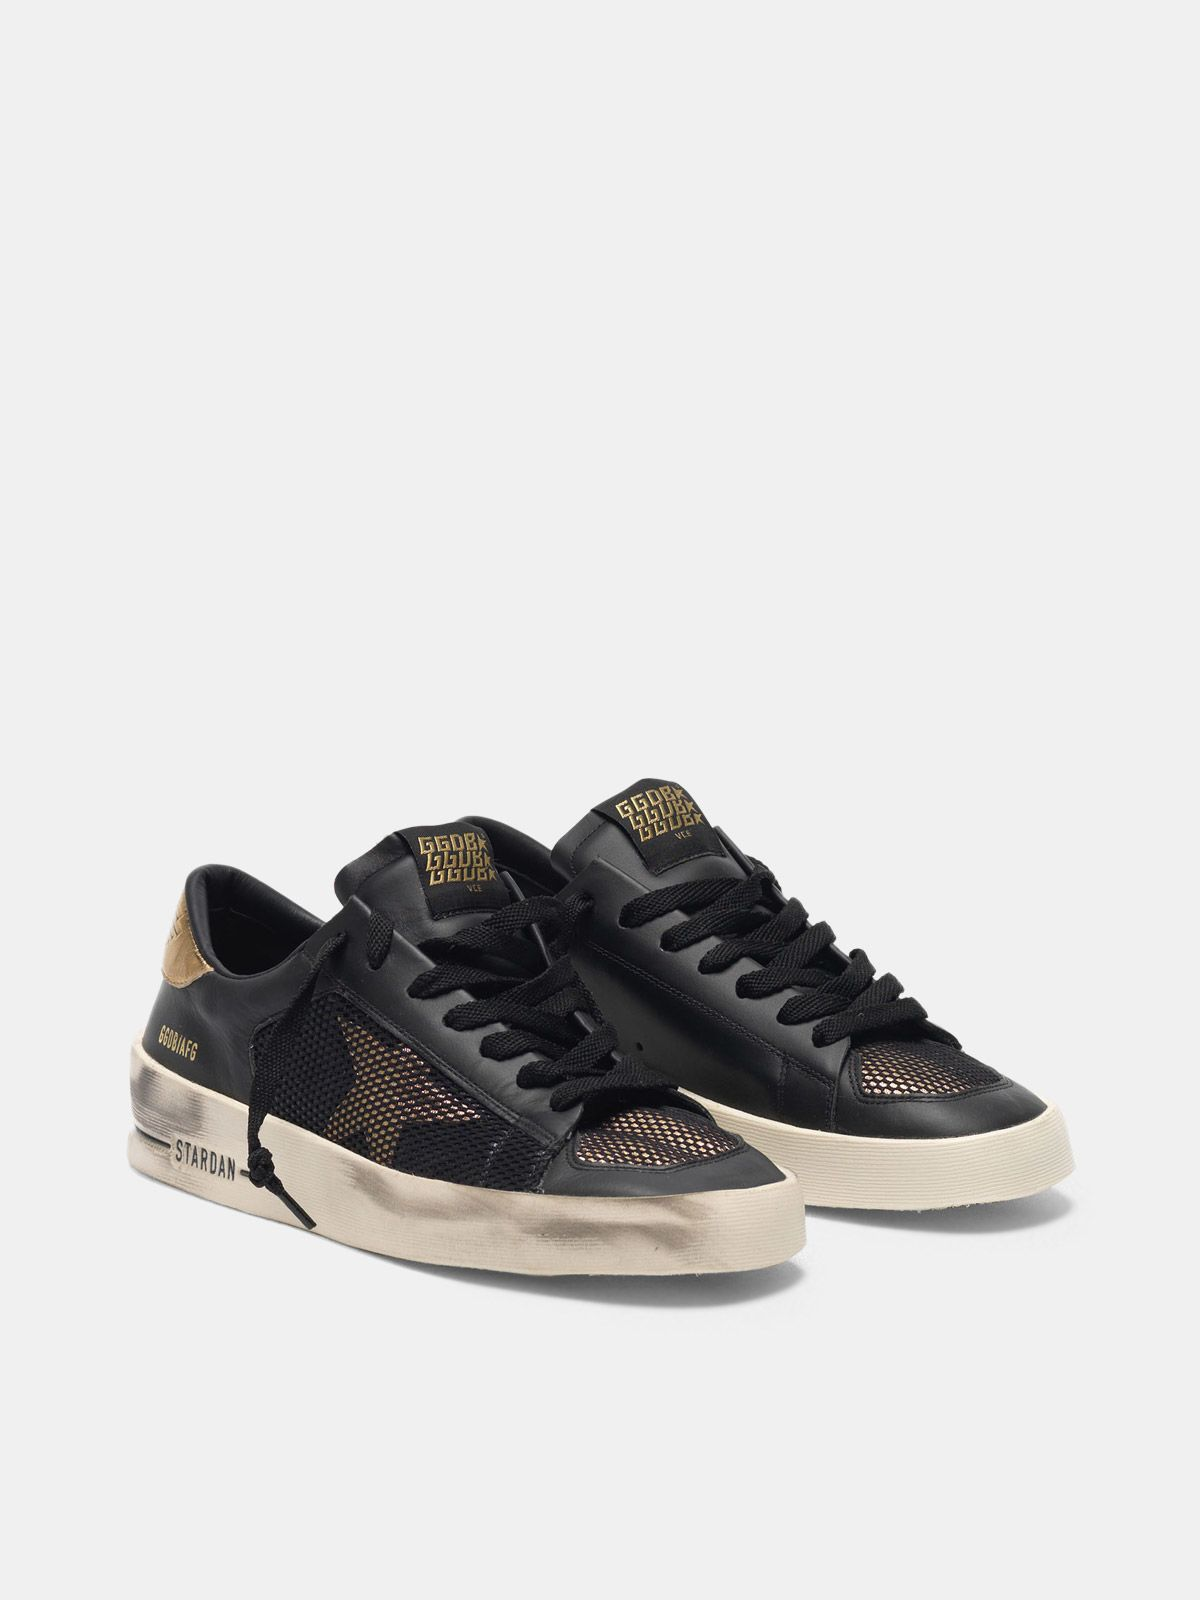 Golden Goose - Stardan sneakers in black and gold leather with mesh inserts in